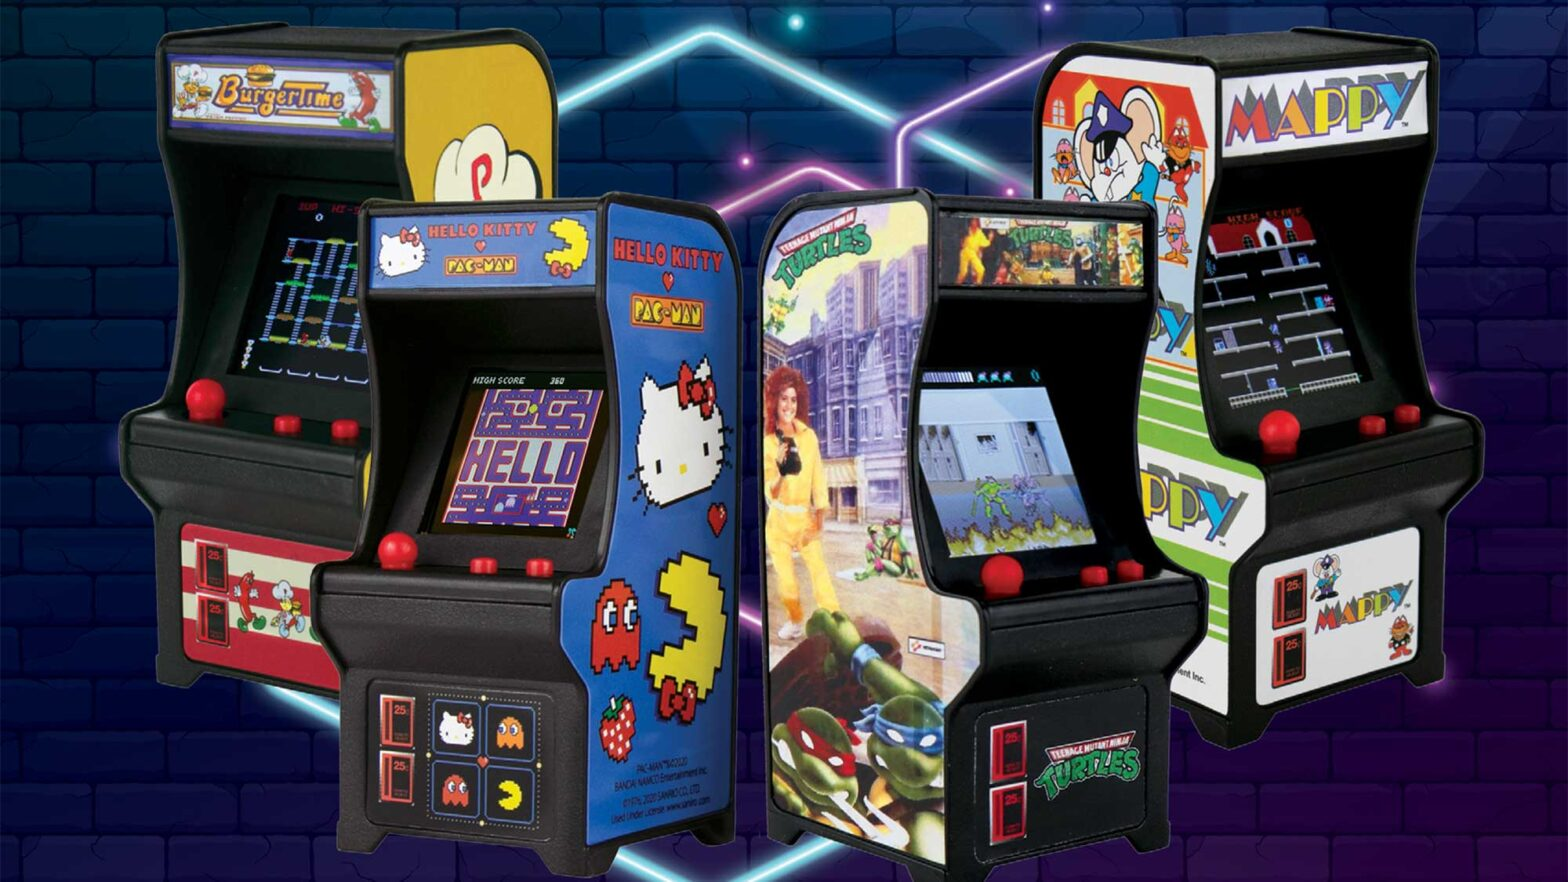 Super Impulse Miniature Classic Arcade Machines